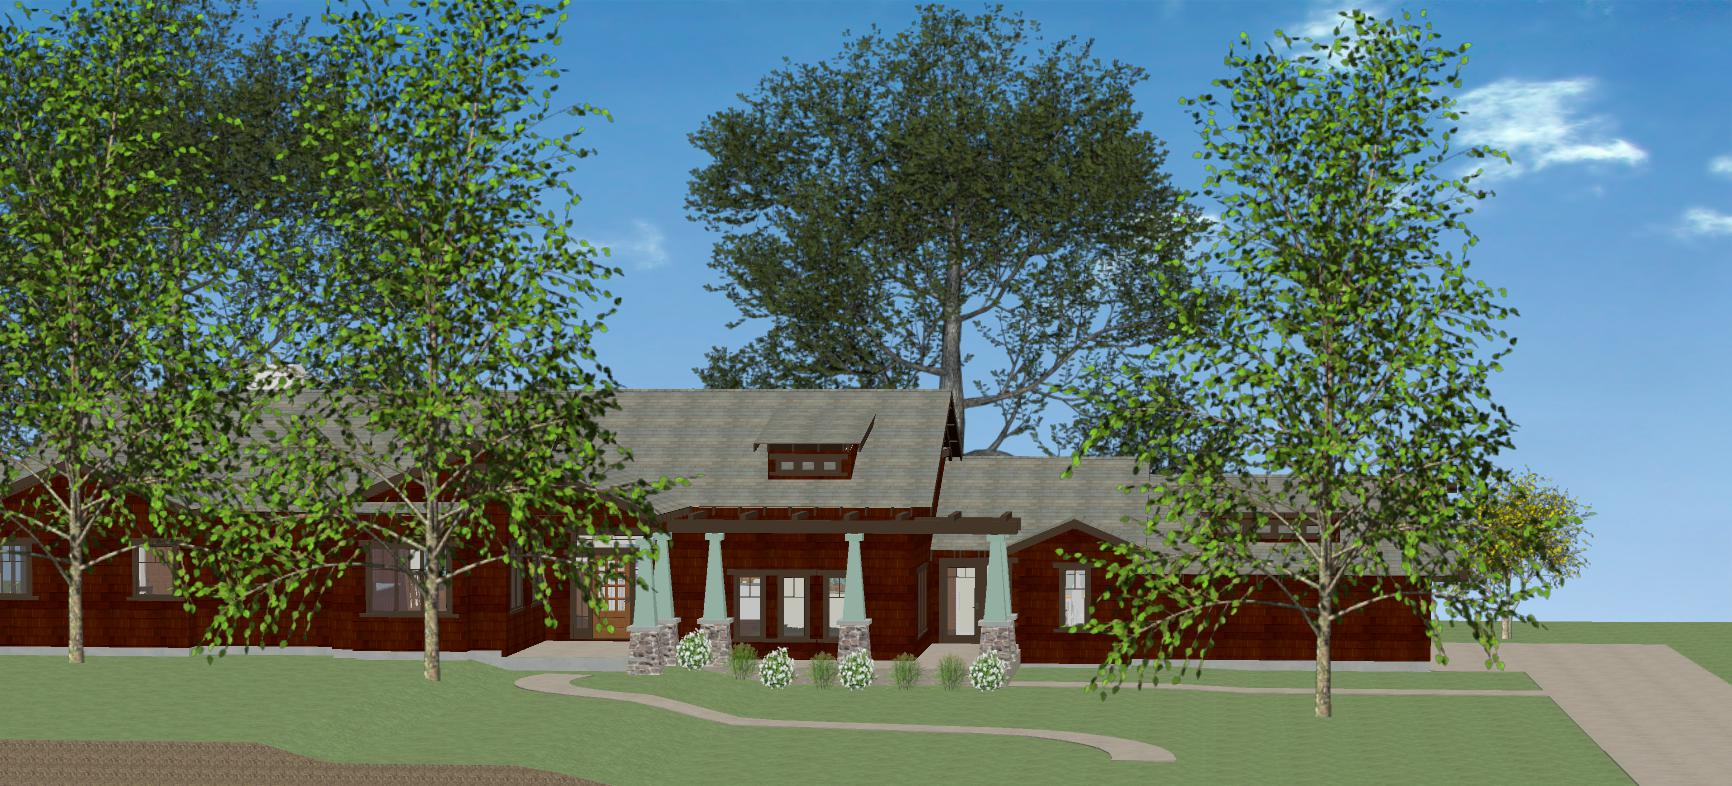 Ojai_remodel_overview2